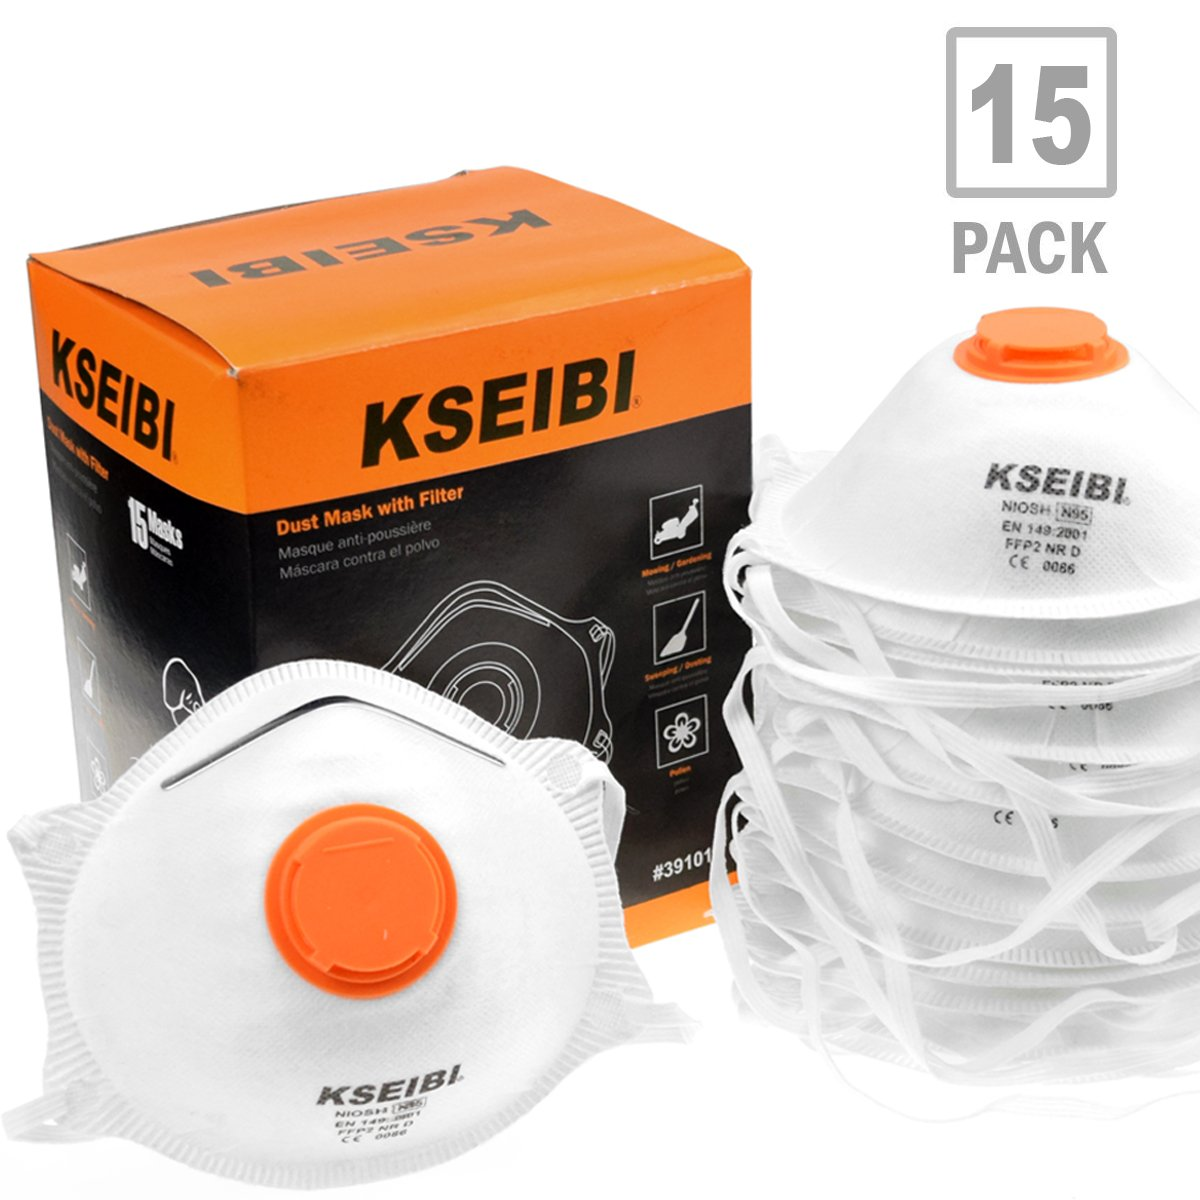 KSEIBI 391015 Safety Particulate Respirator N95 Series W Valve and Adjustable Foam Nose Cushion Dust Mask (15 Pack) by KSEIBI (Image #1)